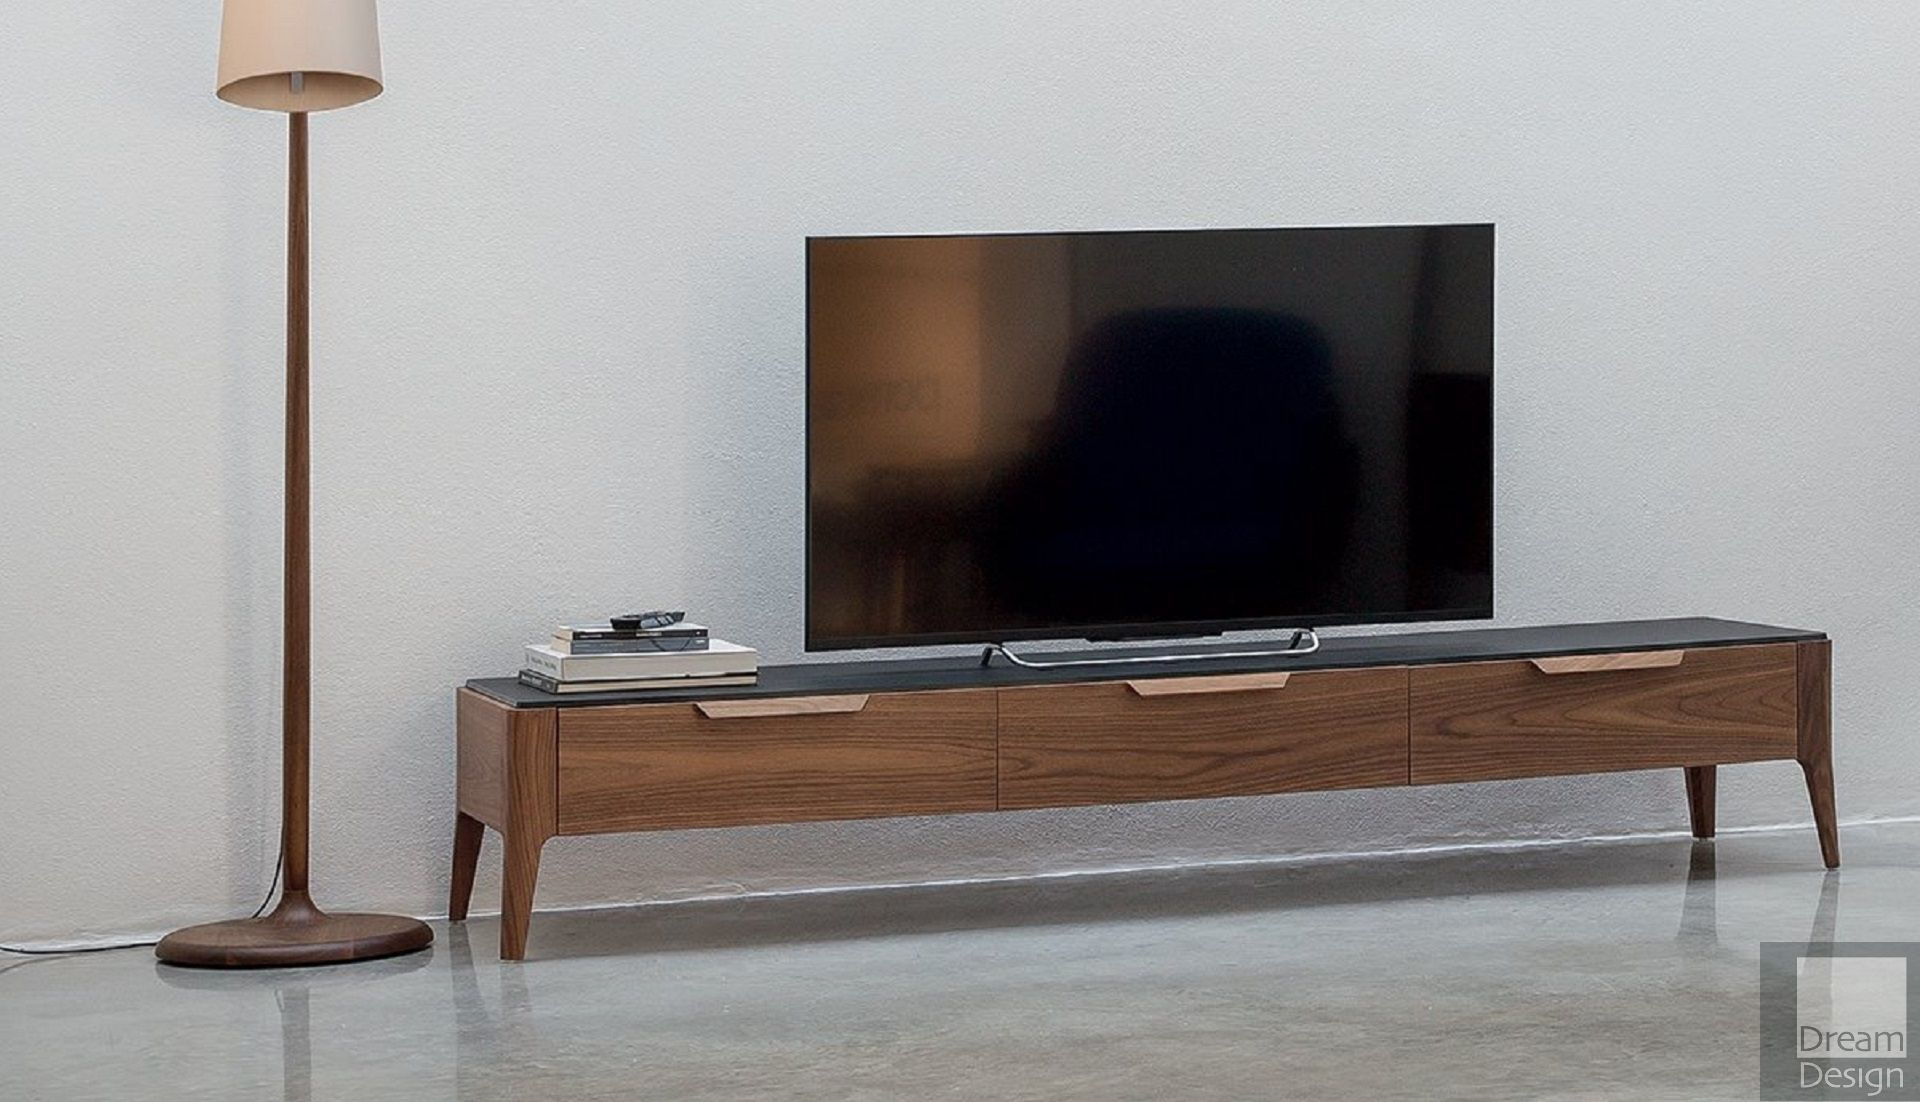 Porada Atlante Tv Stand By Carlo Ballabio Everything But Ordinary # Creation Meuble Tv